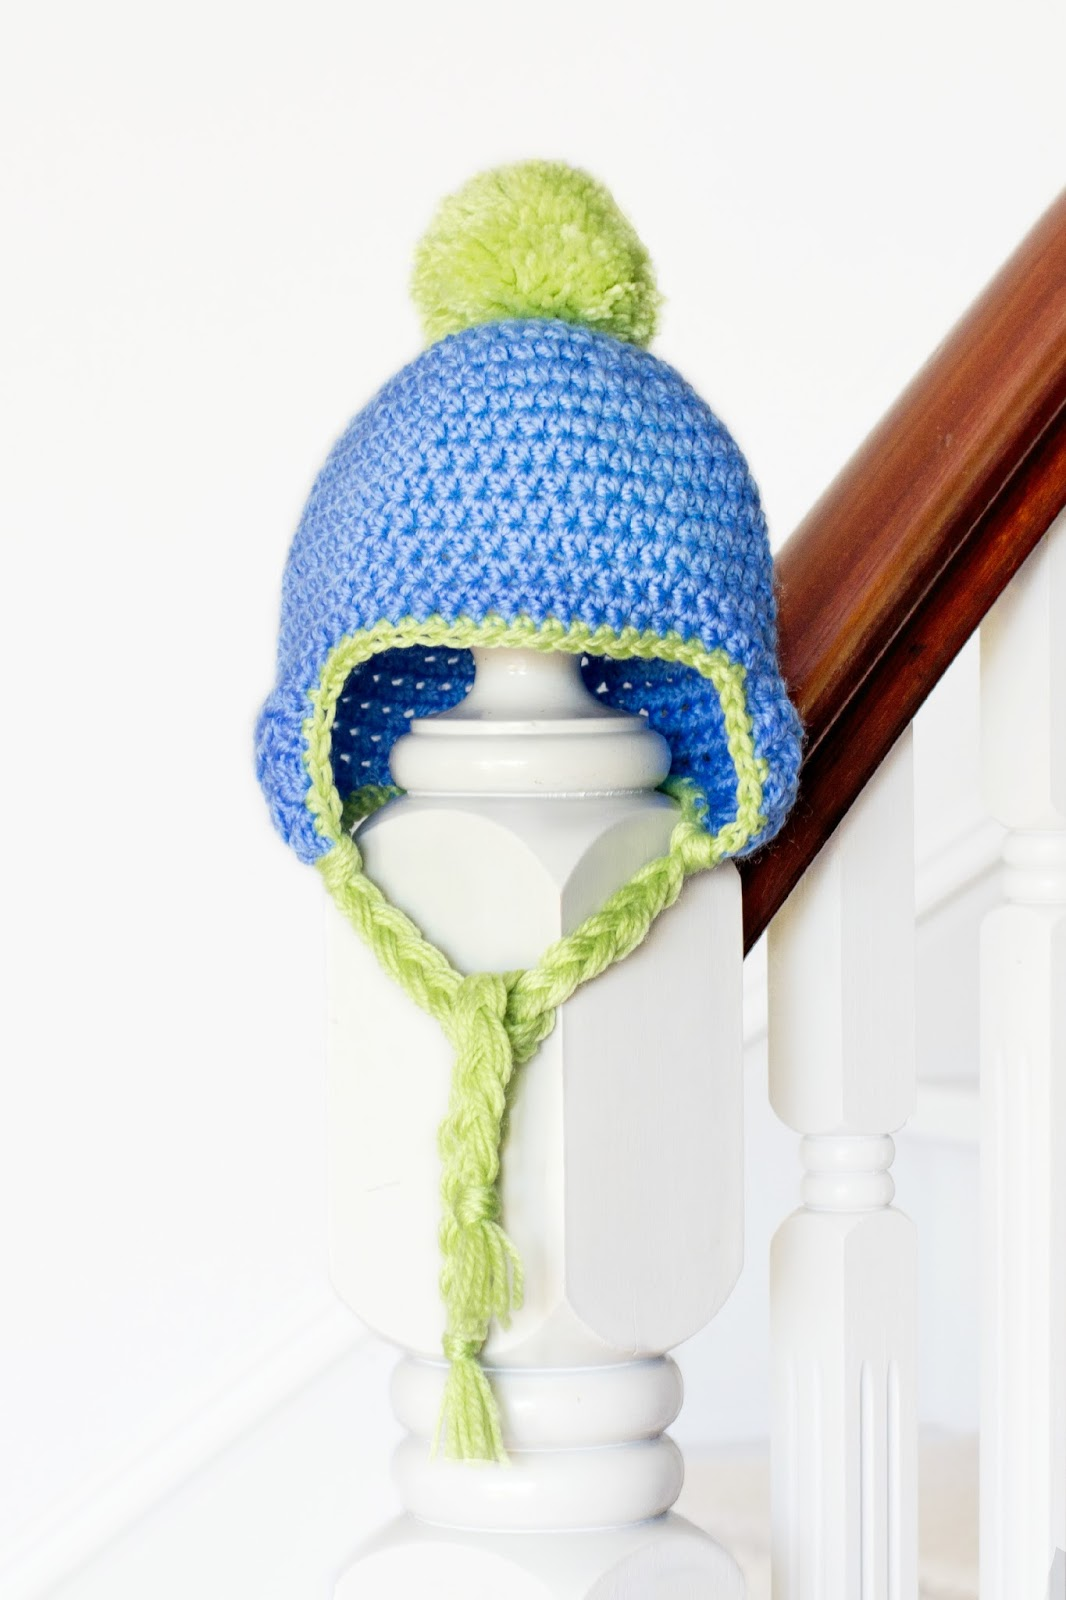 Crochet Baby Hat Pattern With Pom Pom : Hopeful Honey Craft, Crochet, Create: Baby Pom Pom Hat ...